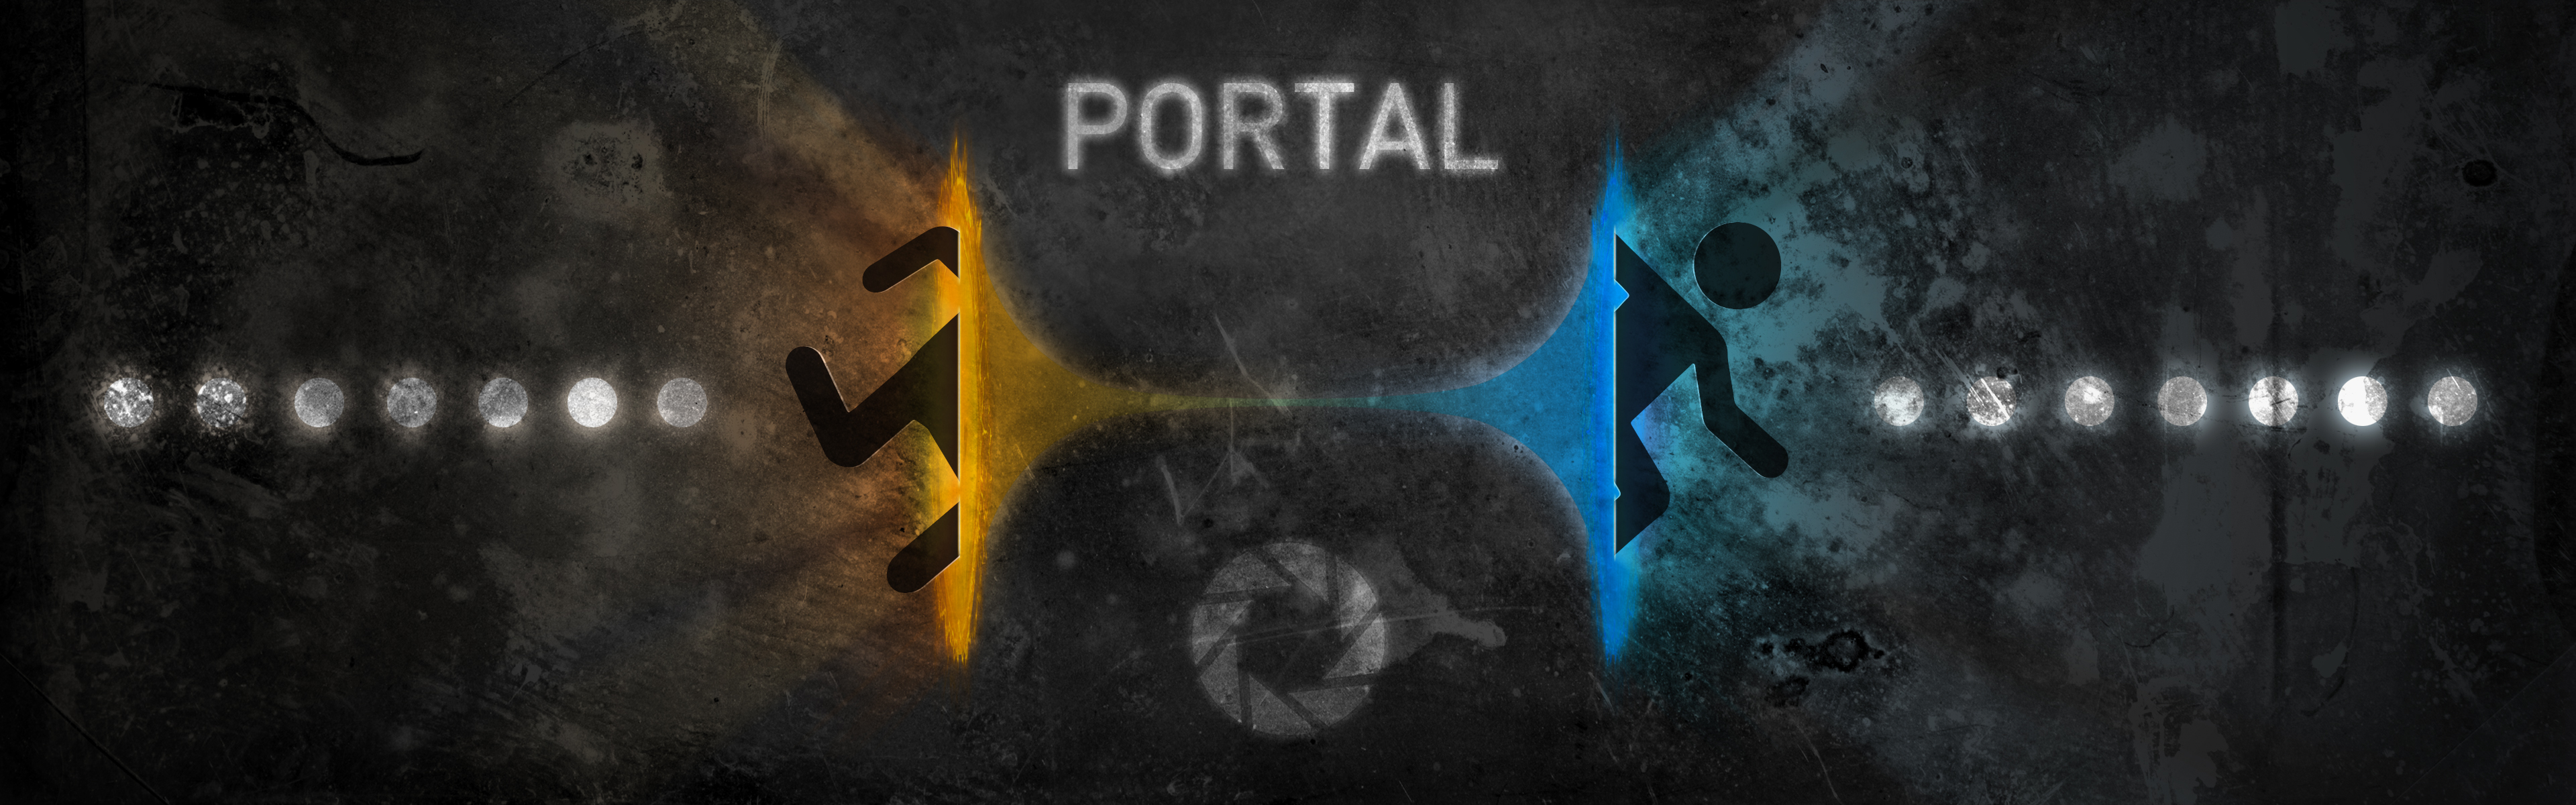 wallpapers I thought I could create a Portal wallpaper for this 3840x1200